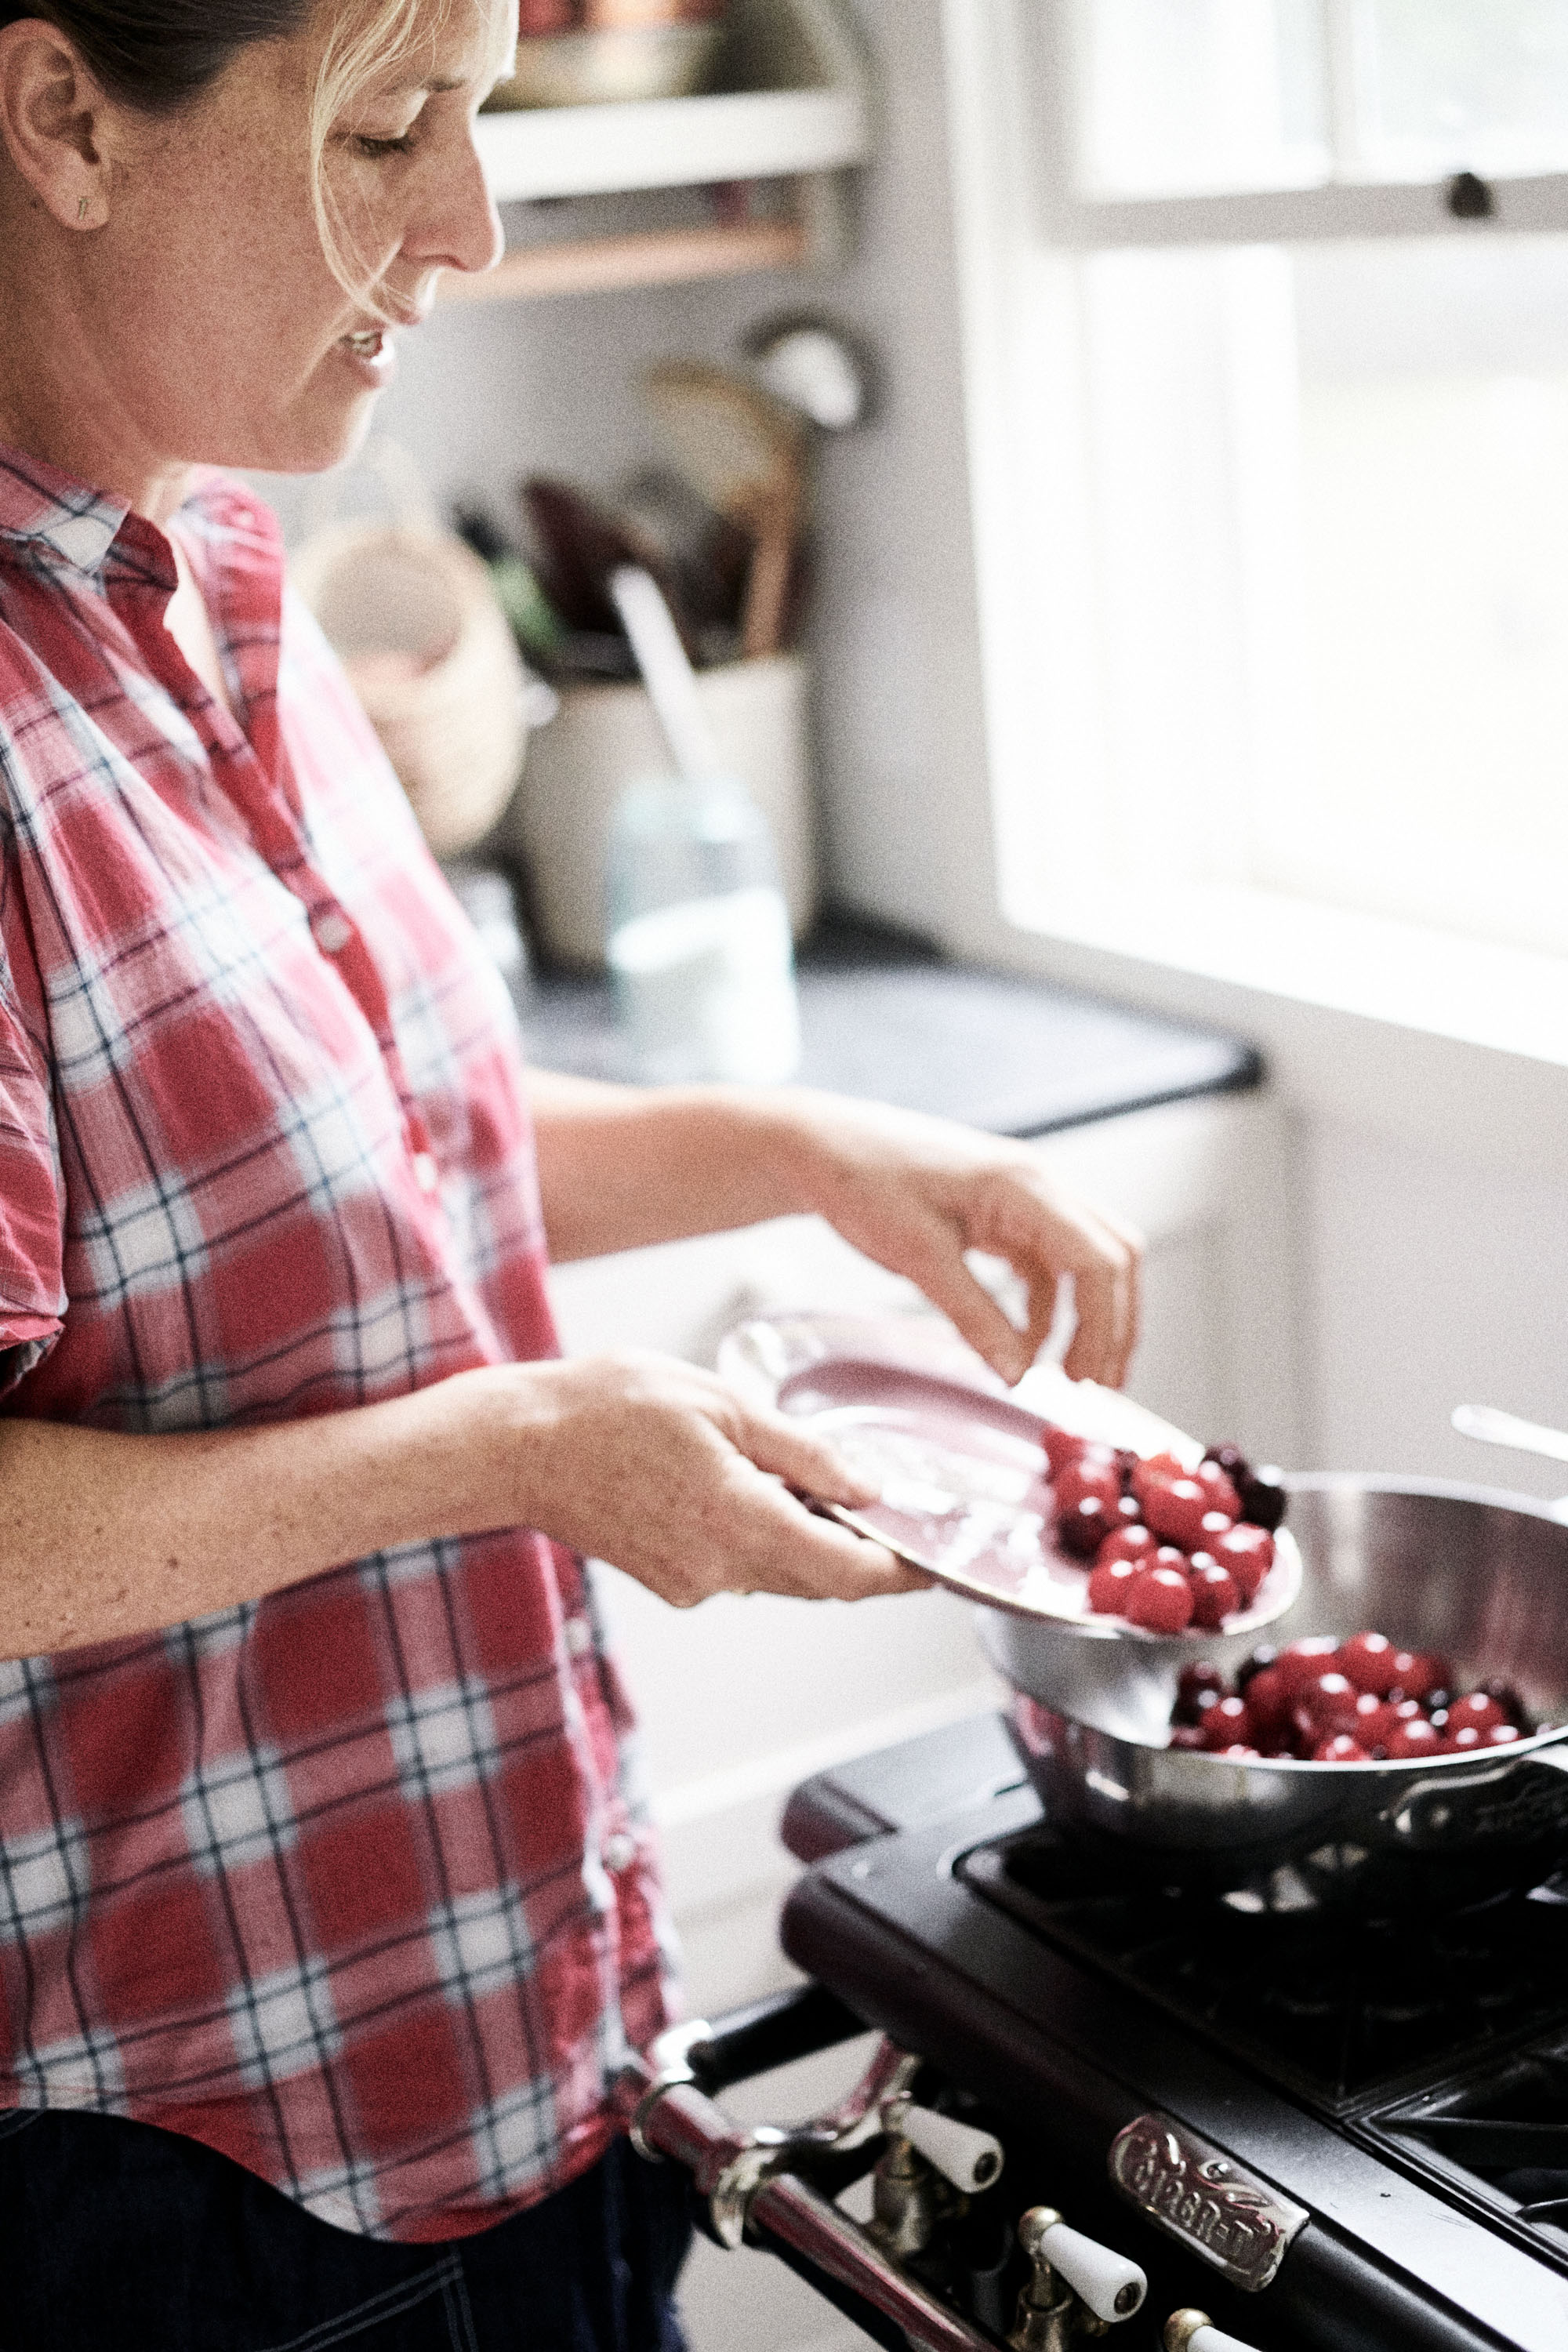 woman pouring cherries into metal bowl